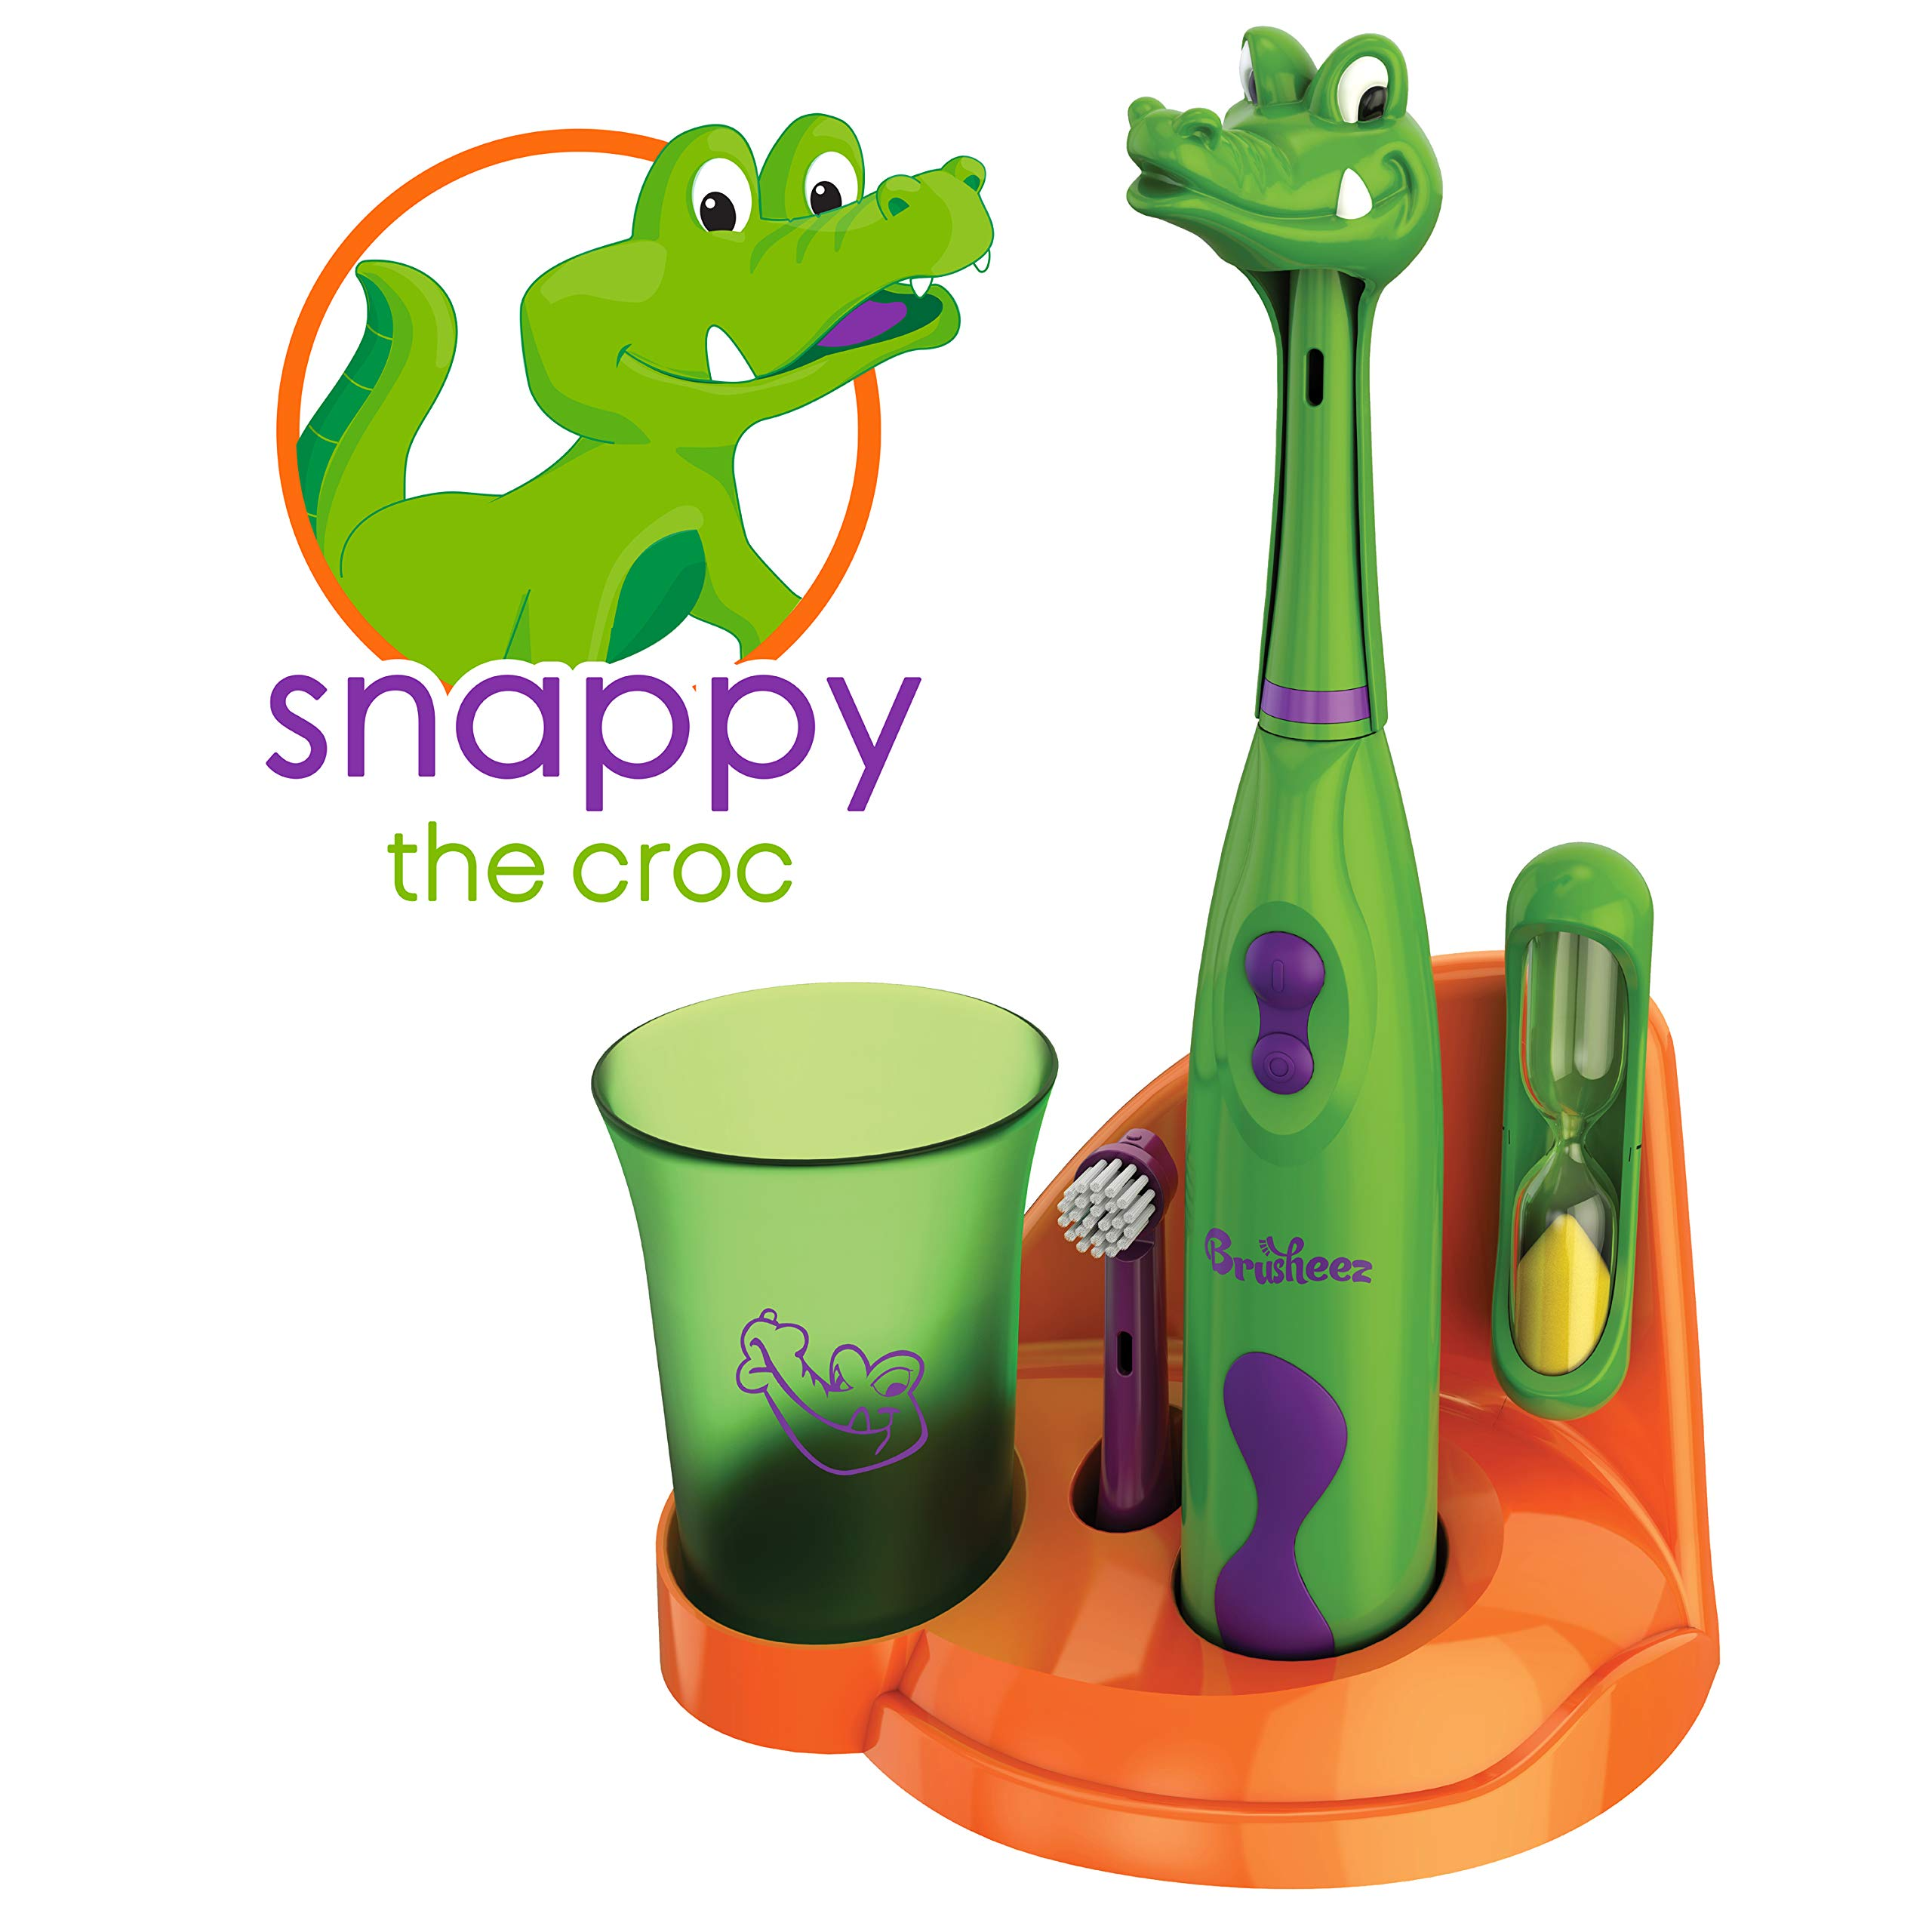 Brusheez Kid's Electric Toothbrush Set - Snappy the Croc - New & Improved with Softer Bristles, Easy-Press Power Button, 2 Brush Heads, Cute Animal Cover, Sand Timer, Rinse Cup & Storage Base by Brusheez